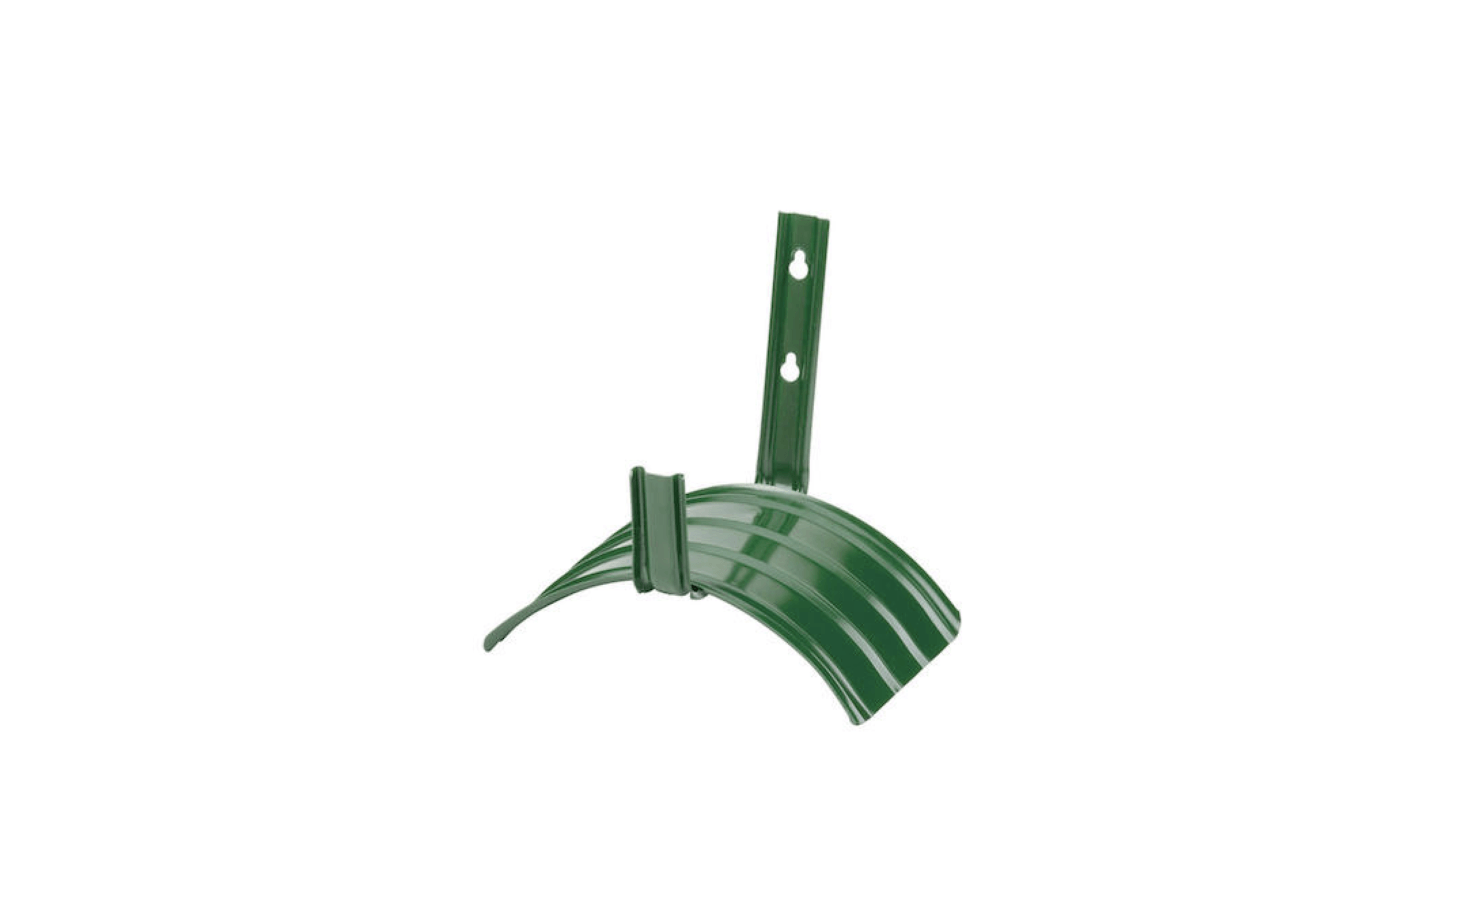 A Gilmour 8115 Steel Hose Hanger can accommodate a 100-foot hose; $6.49 from Sears.